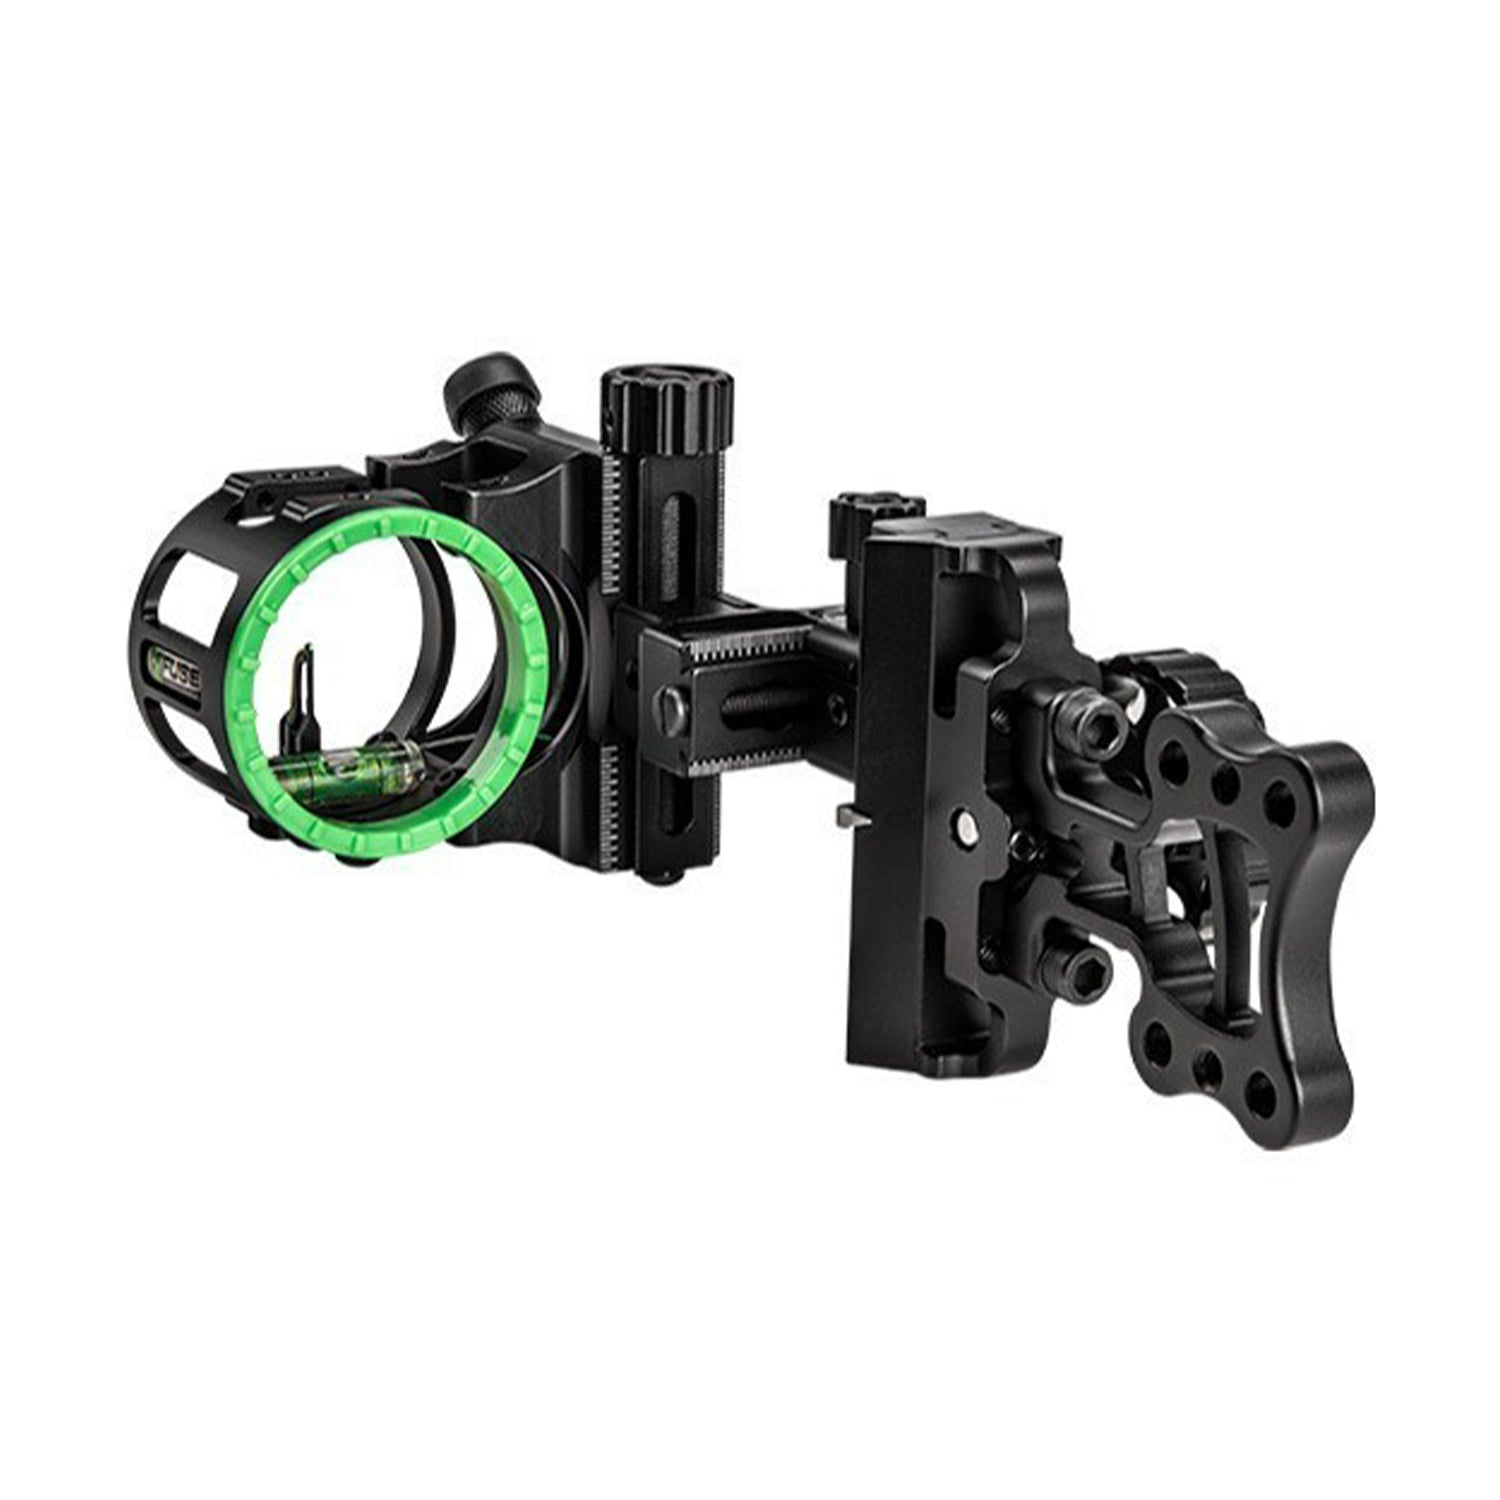 Flywheel Slide Single pin sight